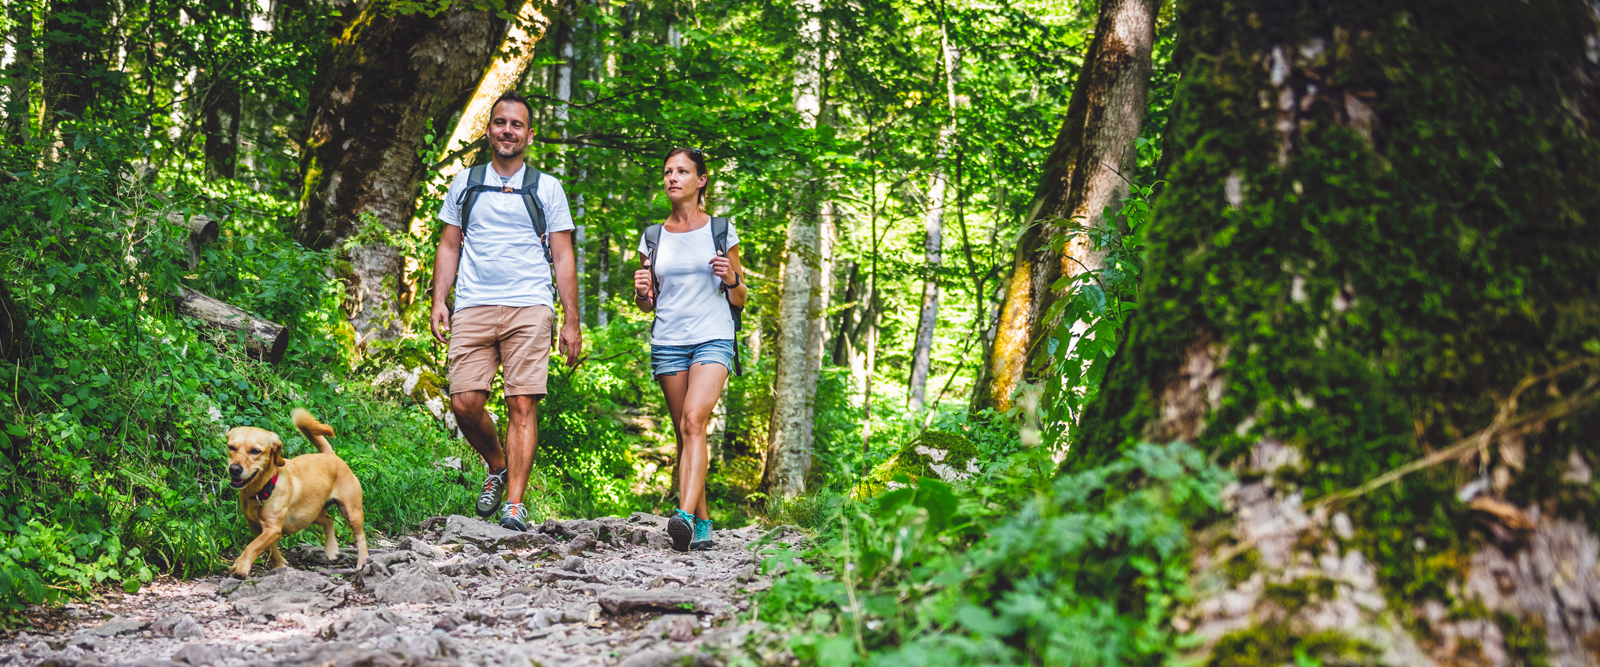 Man and woman walking on hiking trail with dog